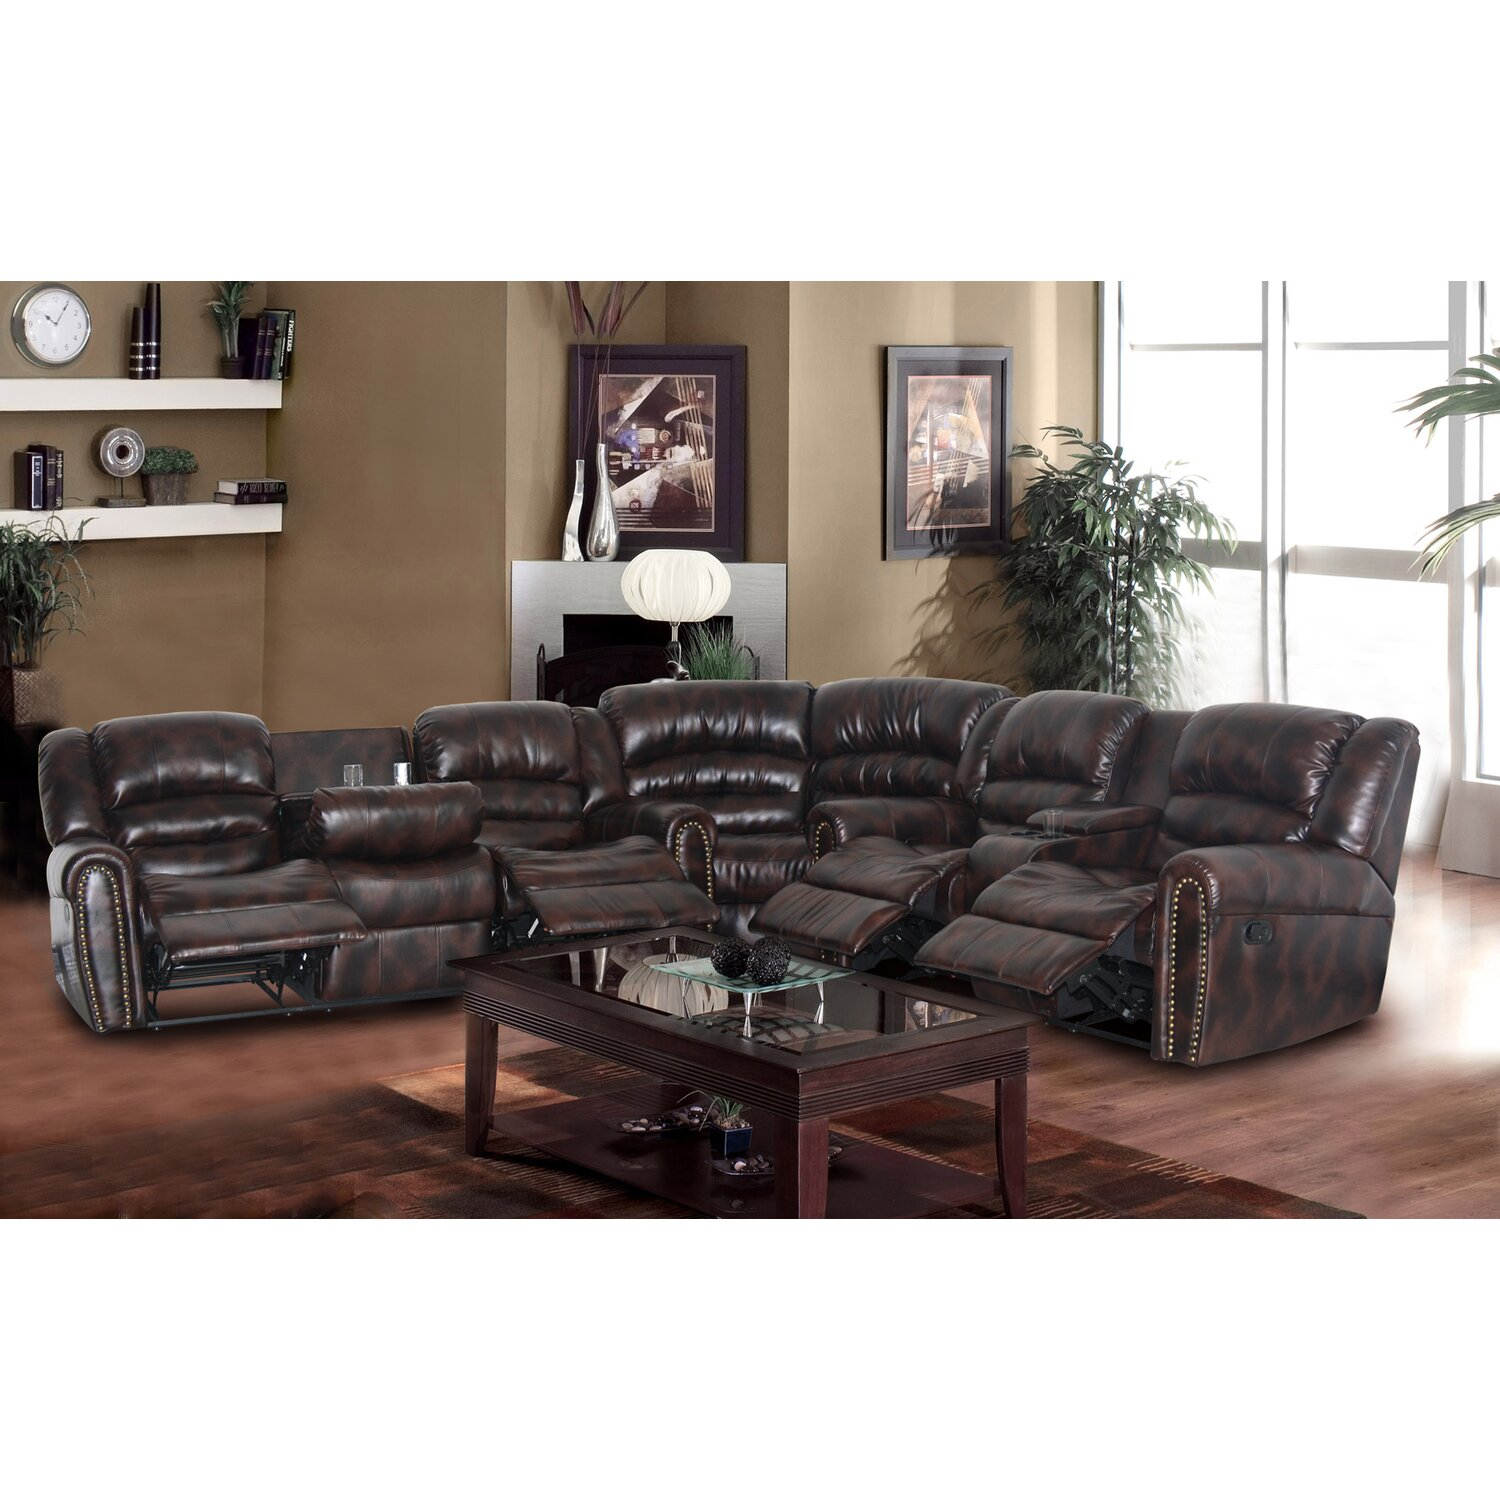 Sophy 3 piece brown bonded leather reclining living room for 3pc leather living room set